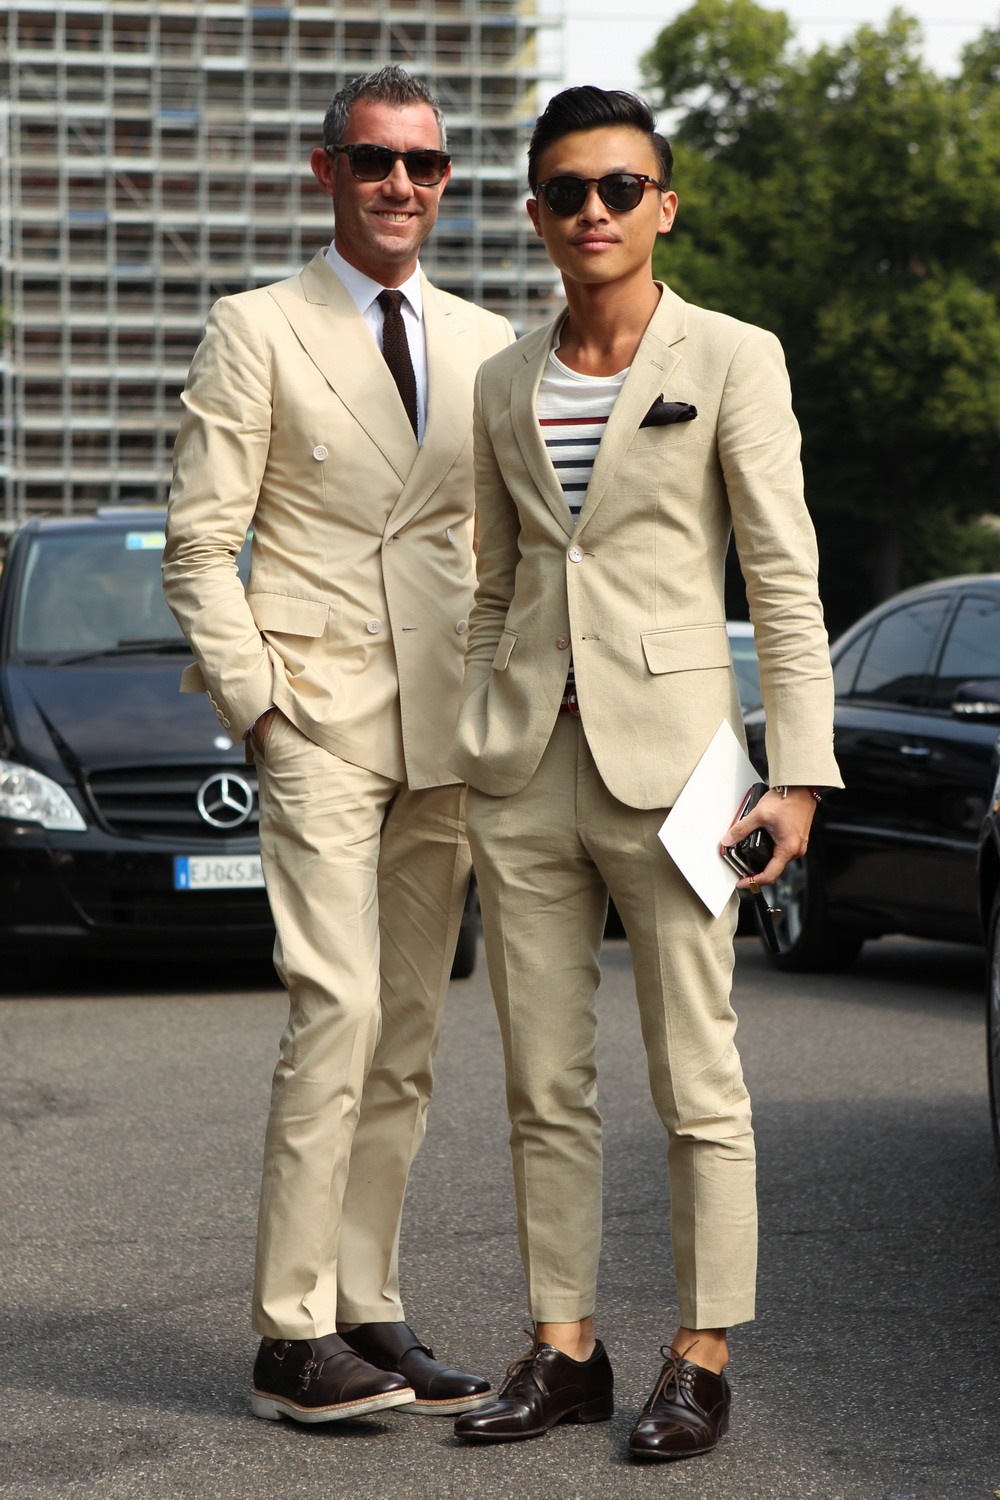 Same-color-colour-different-style-suit-fashion-men-street.jpg